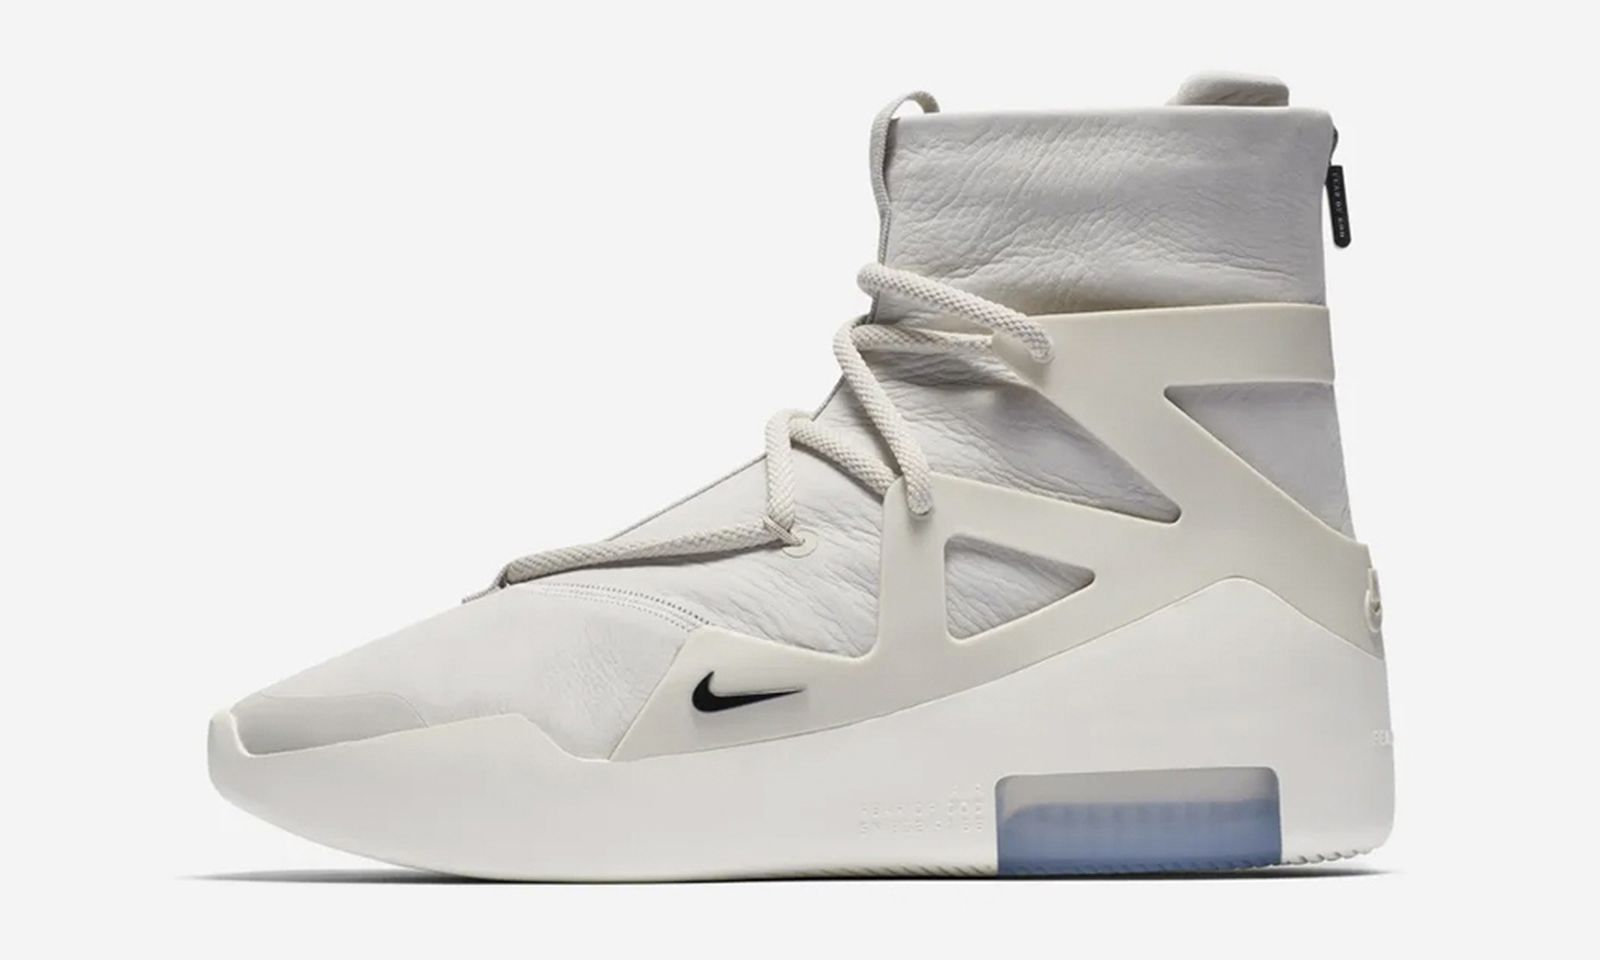 nike air fear of god 1 release date price light bone comments Jerry Lorenzo OFF-WHITE c/o Virgil Abloh Raf Simons